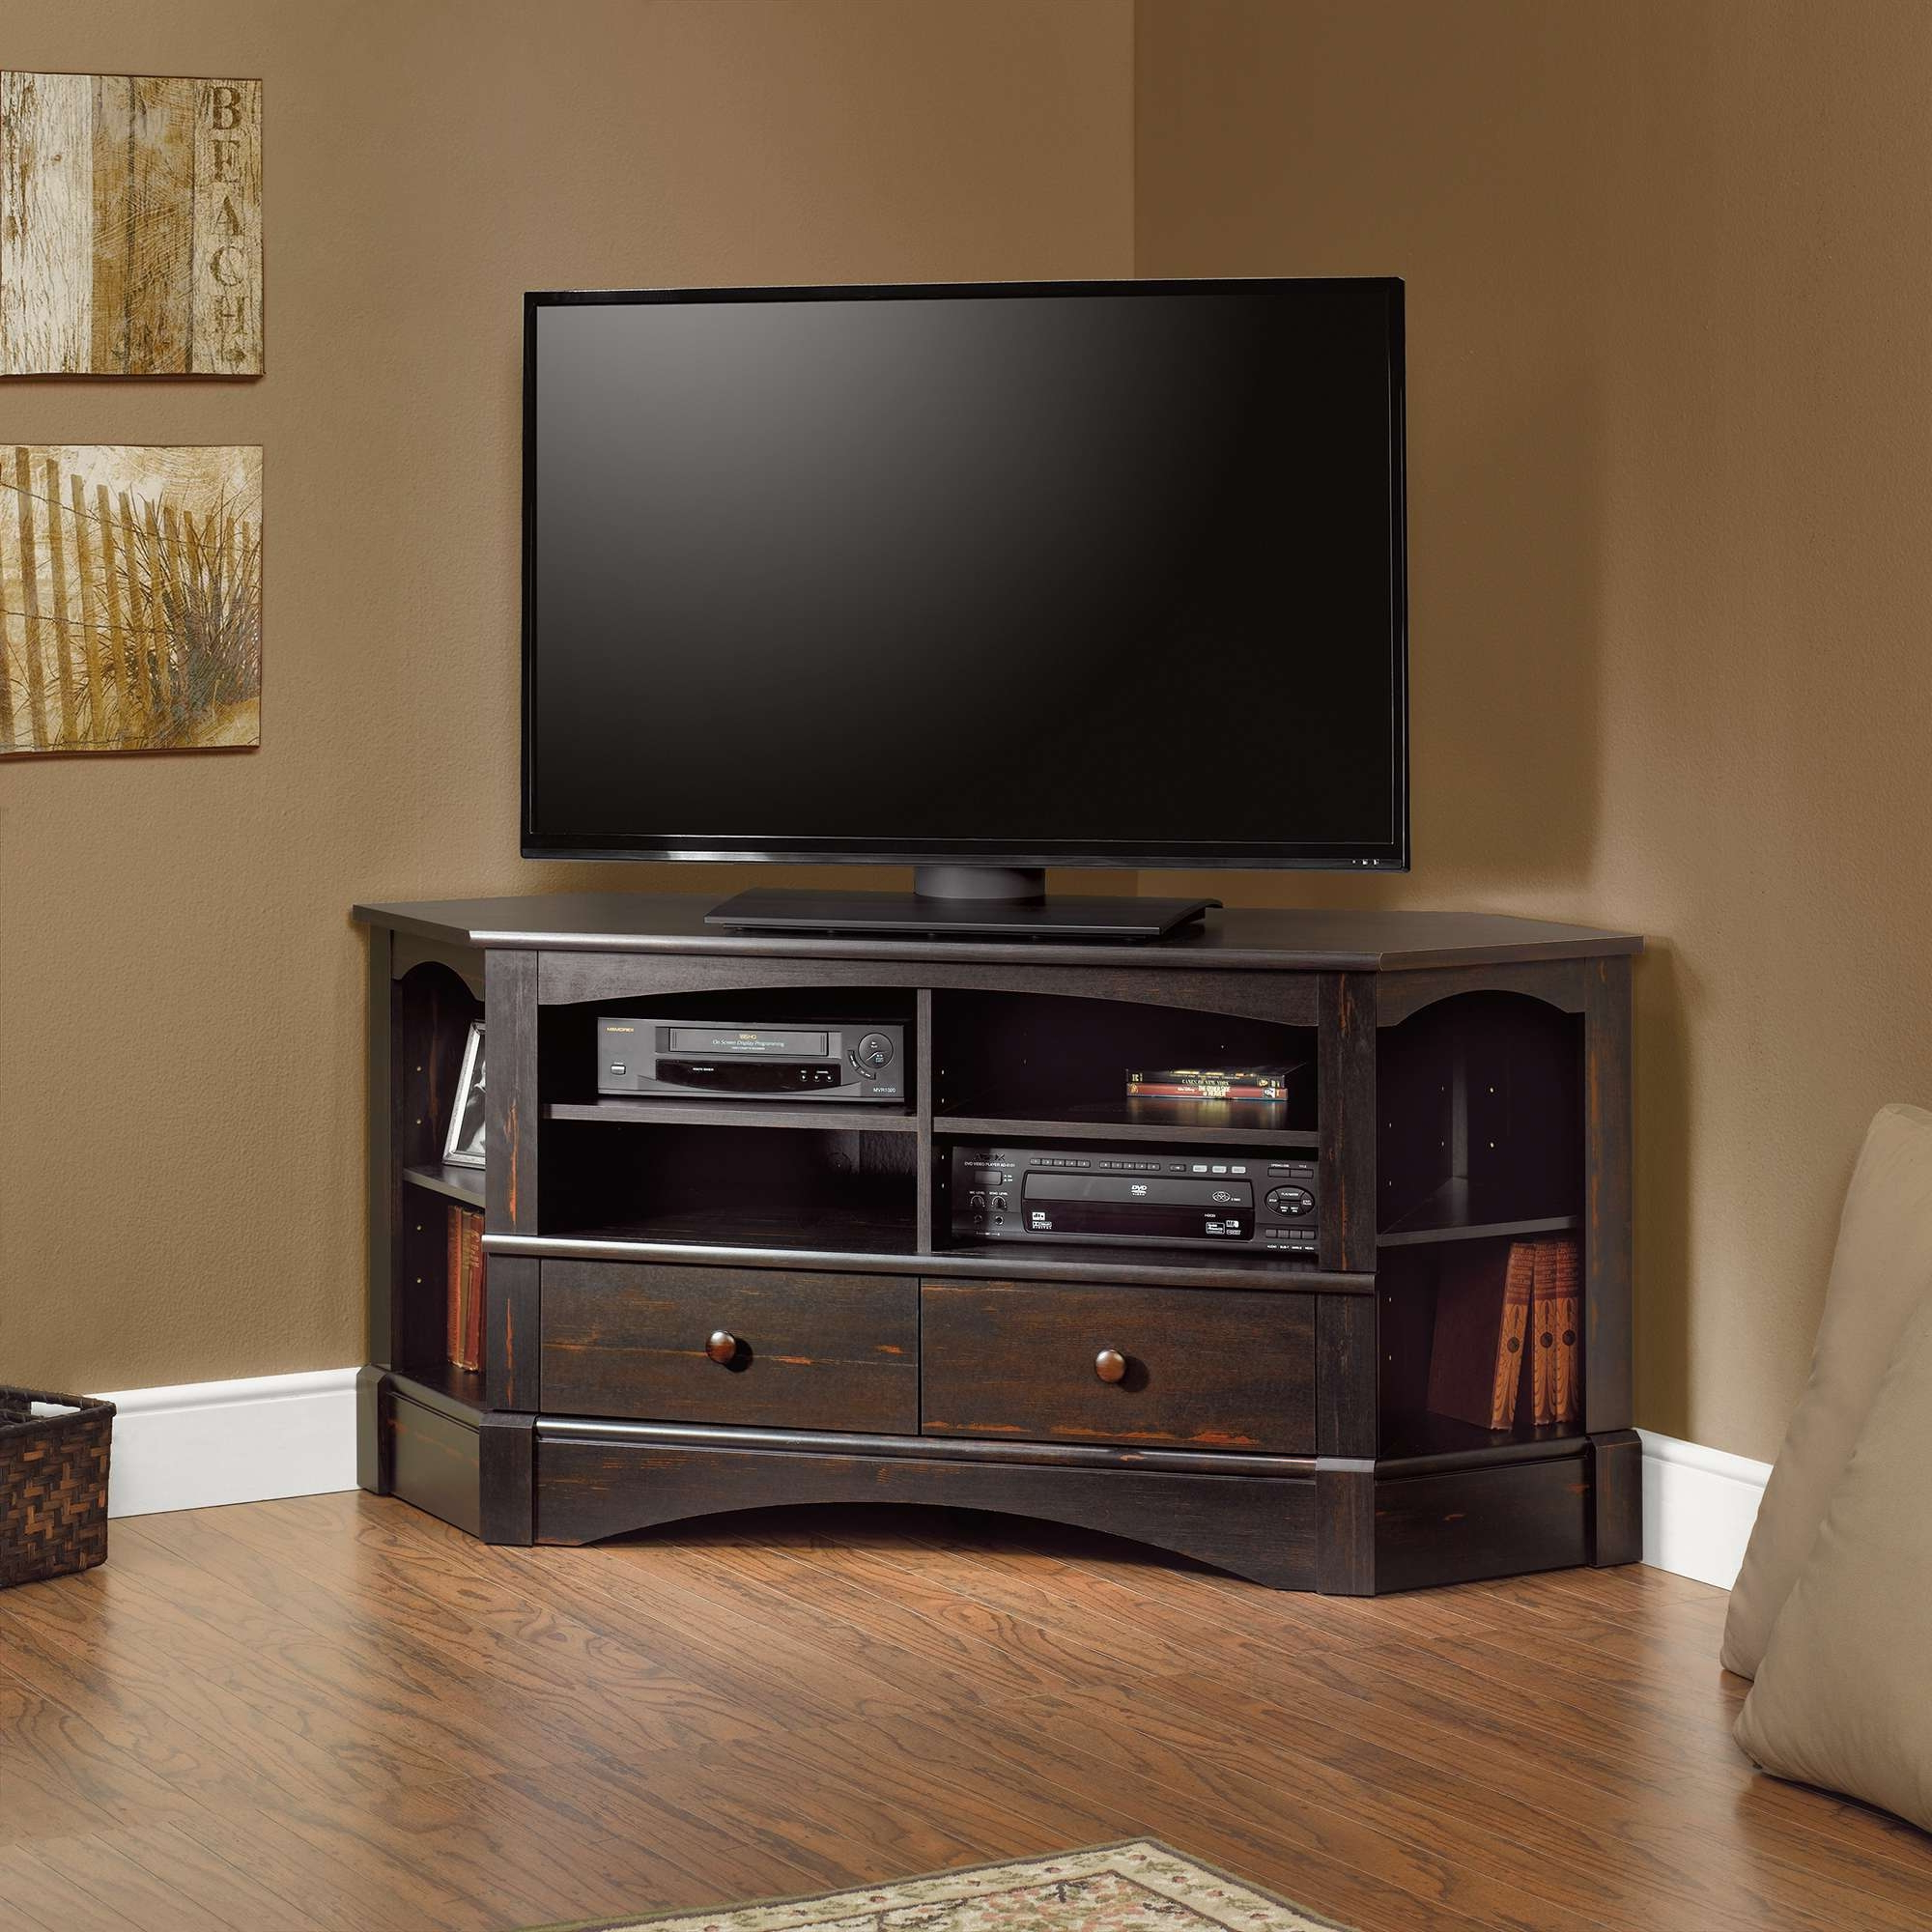 Tv Stands Costco Cherry Wood Entertainment Centers Rustic Wooden Inside Popular Cherry Wood Tv Cabinets (View 14 of 20)